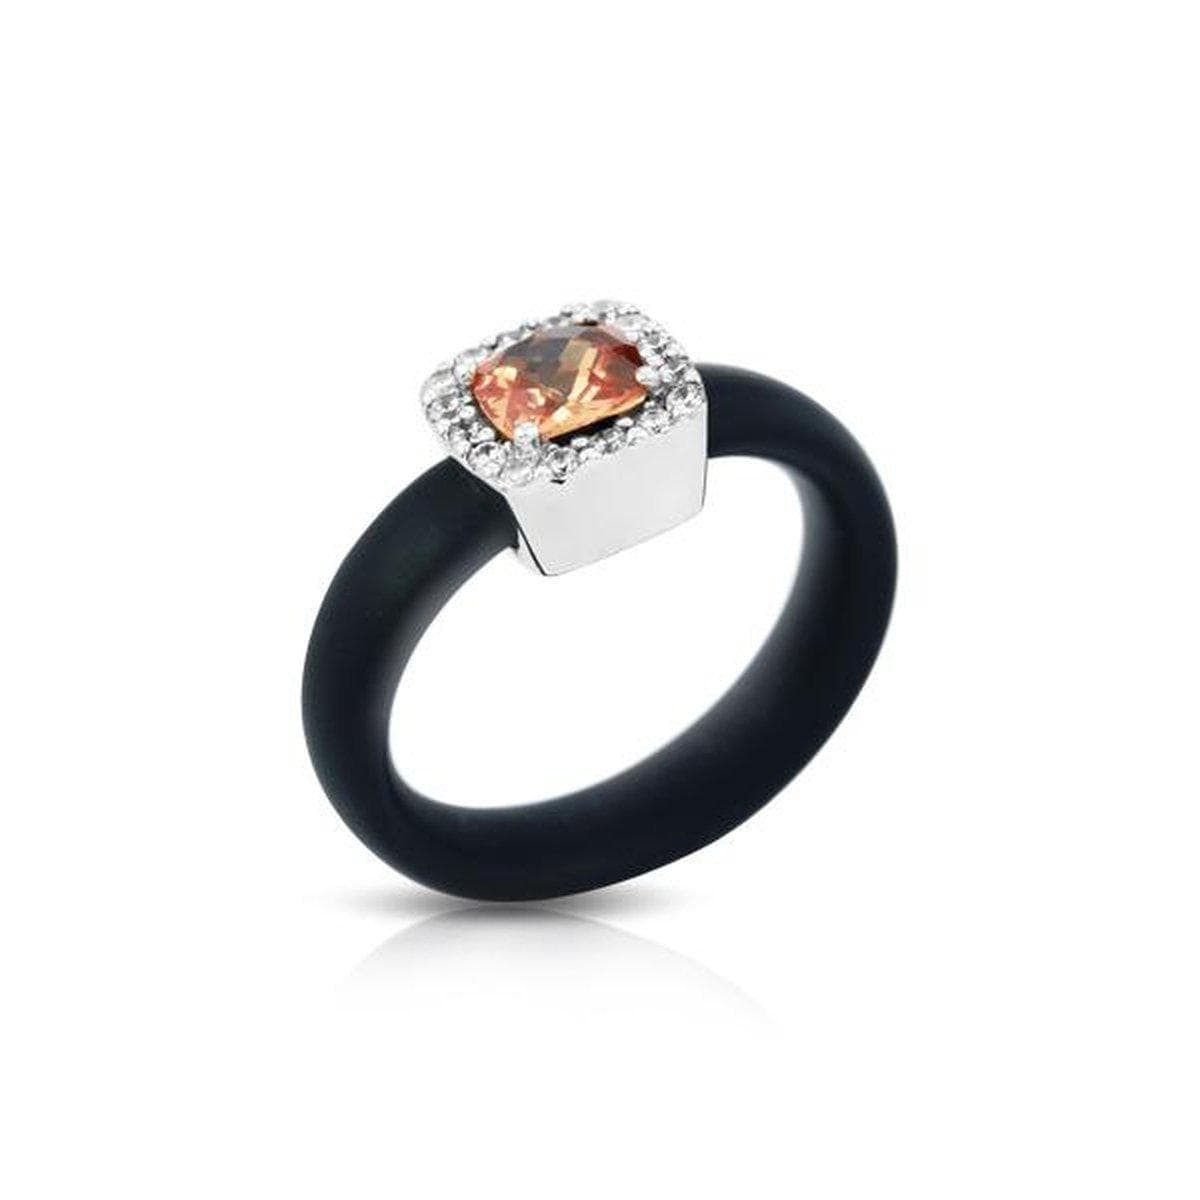 Diana Black and Champagne Ring-Belle Etoile-Renee Taylor Gallery